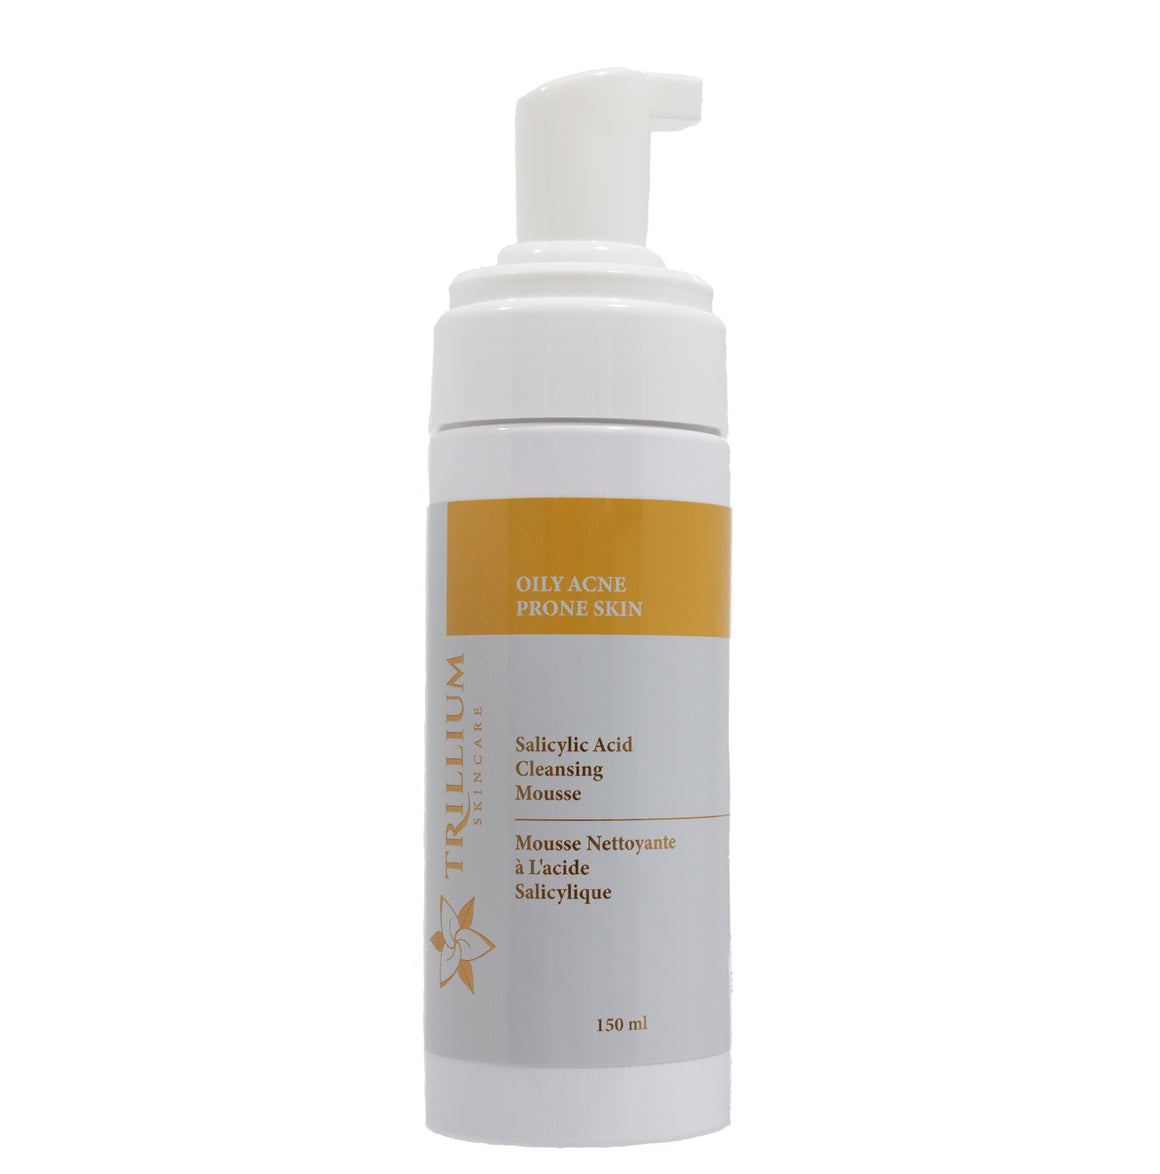 SALICYLIC ACID CLEANSING MOUSSE (150ml)